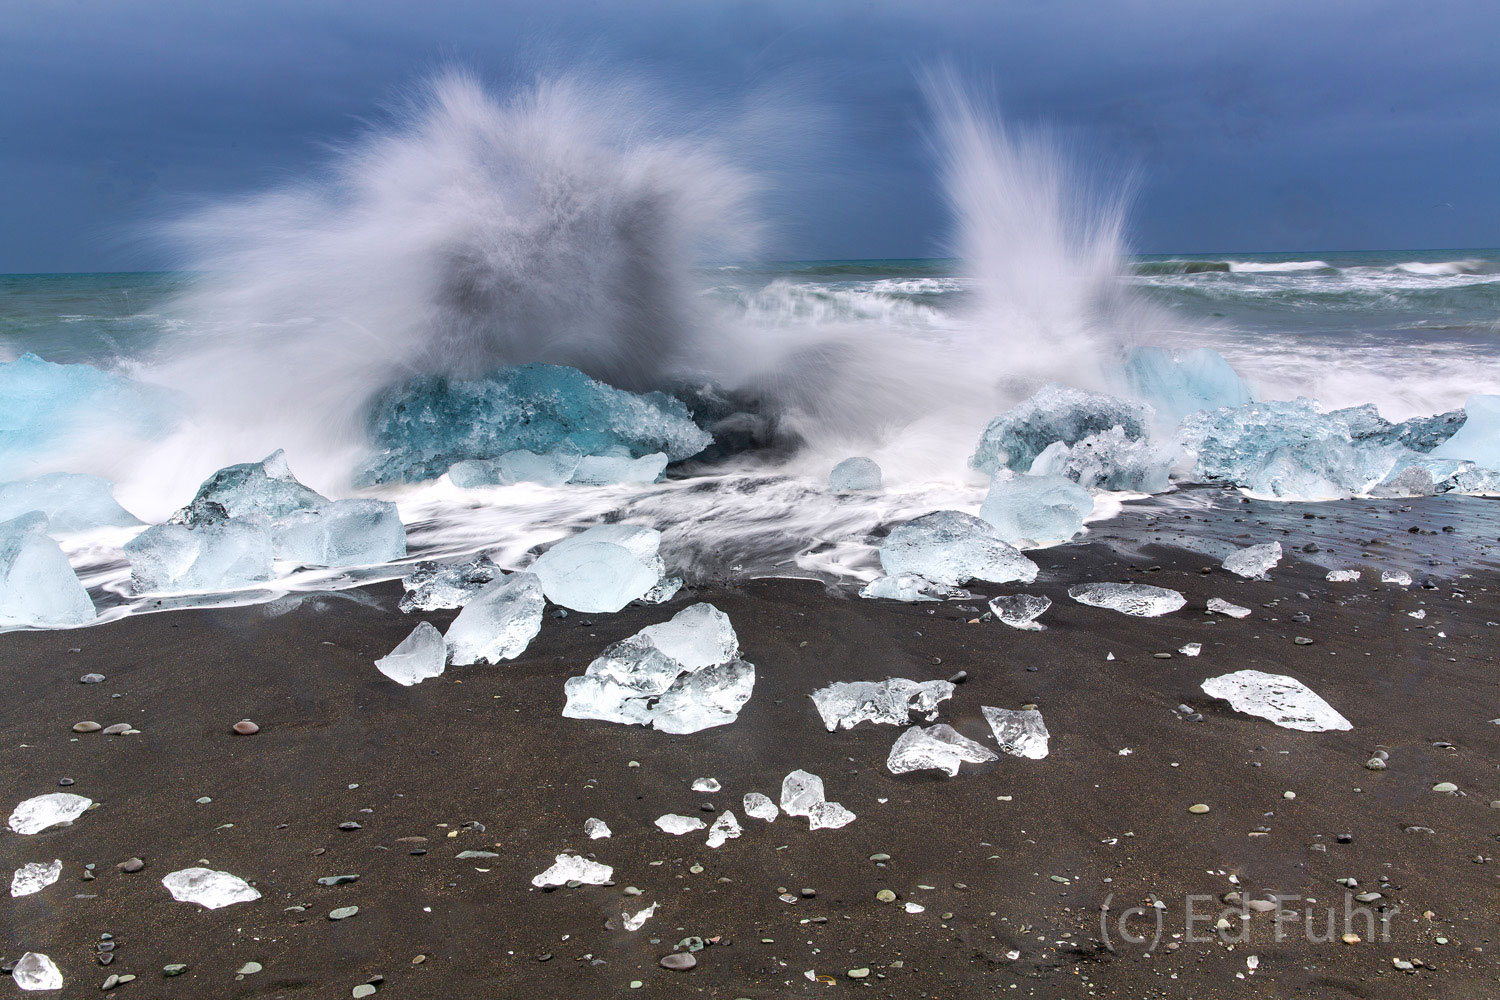 A summer storm has swelled the waves and the ocean seems determined to pound and destroy the ice that has flowed overnight from...